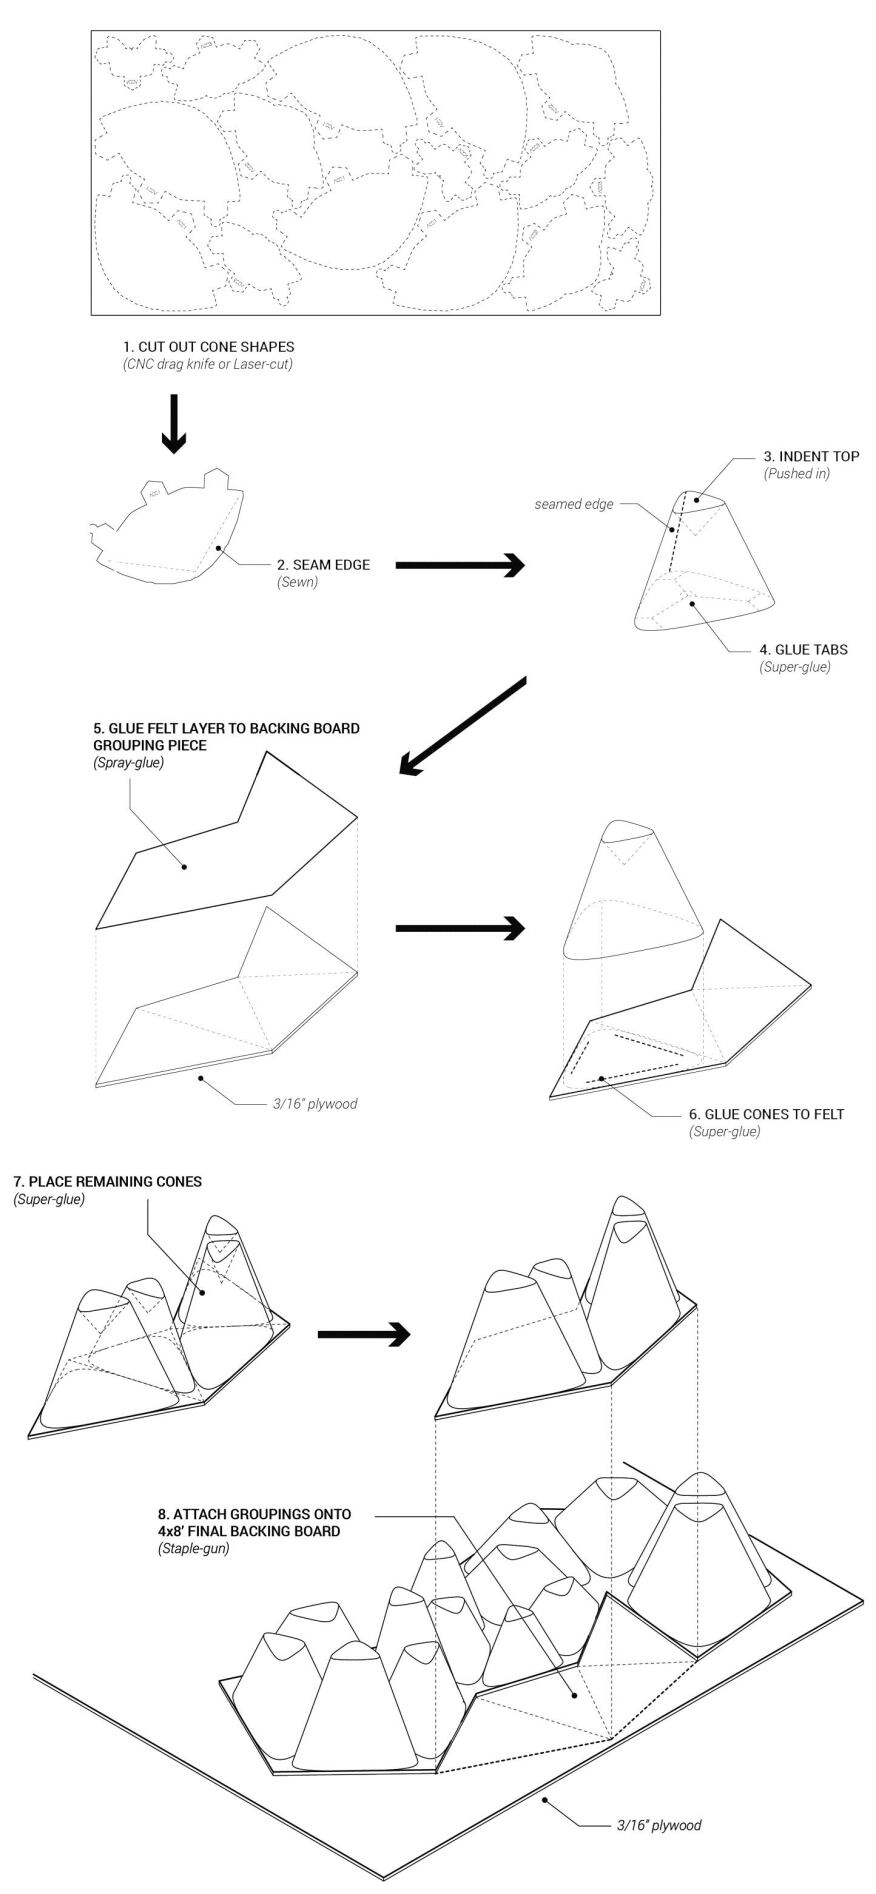 Assembly sequence for the 6,000 Black Lake cones.